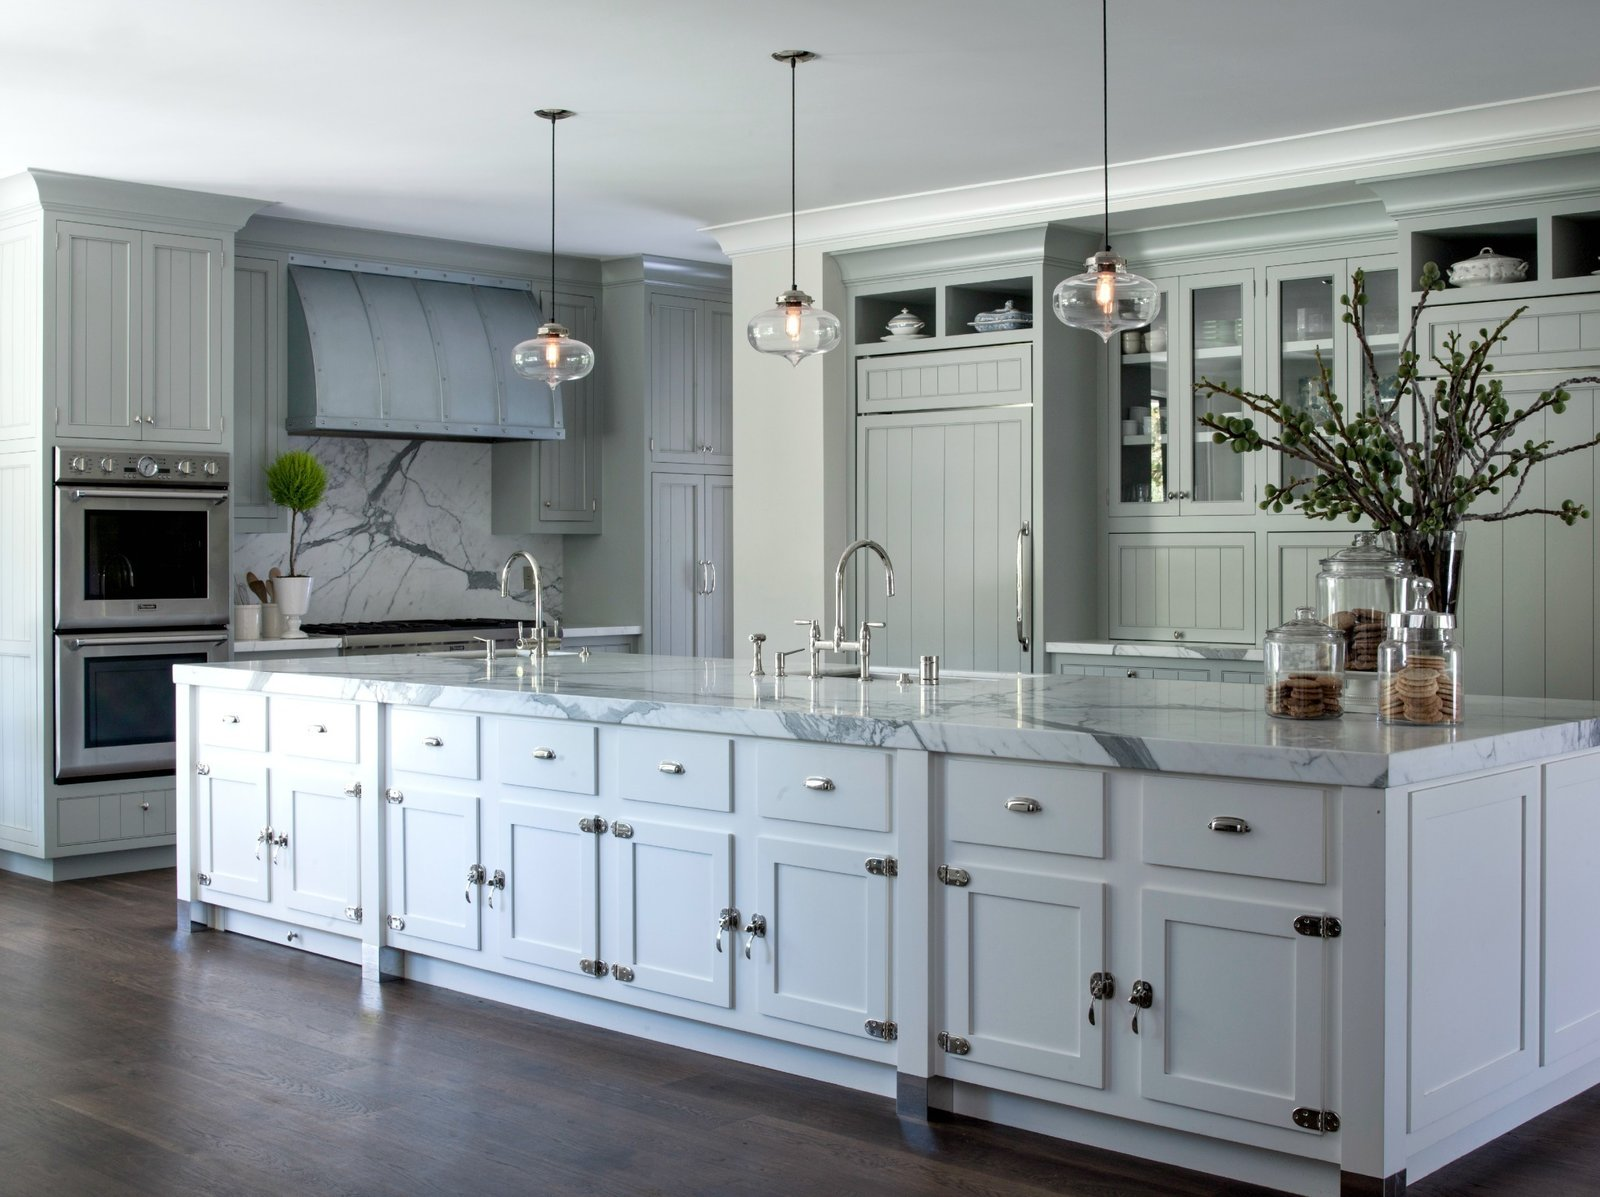 Modern Kitchen Island Lighting Modern Farmhouse Incorporates Contemporary Kitchen Island